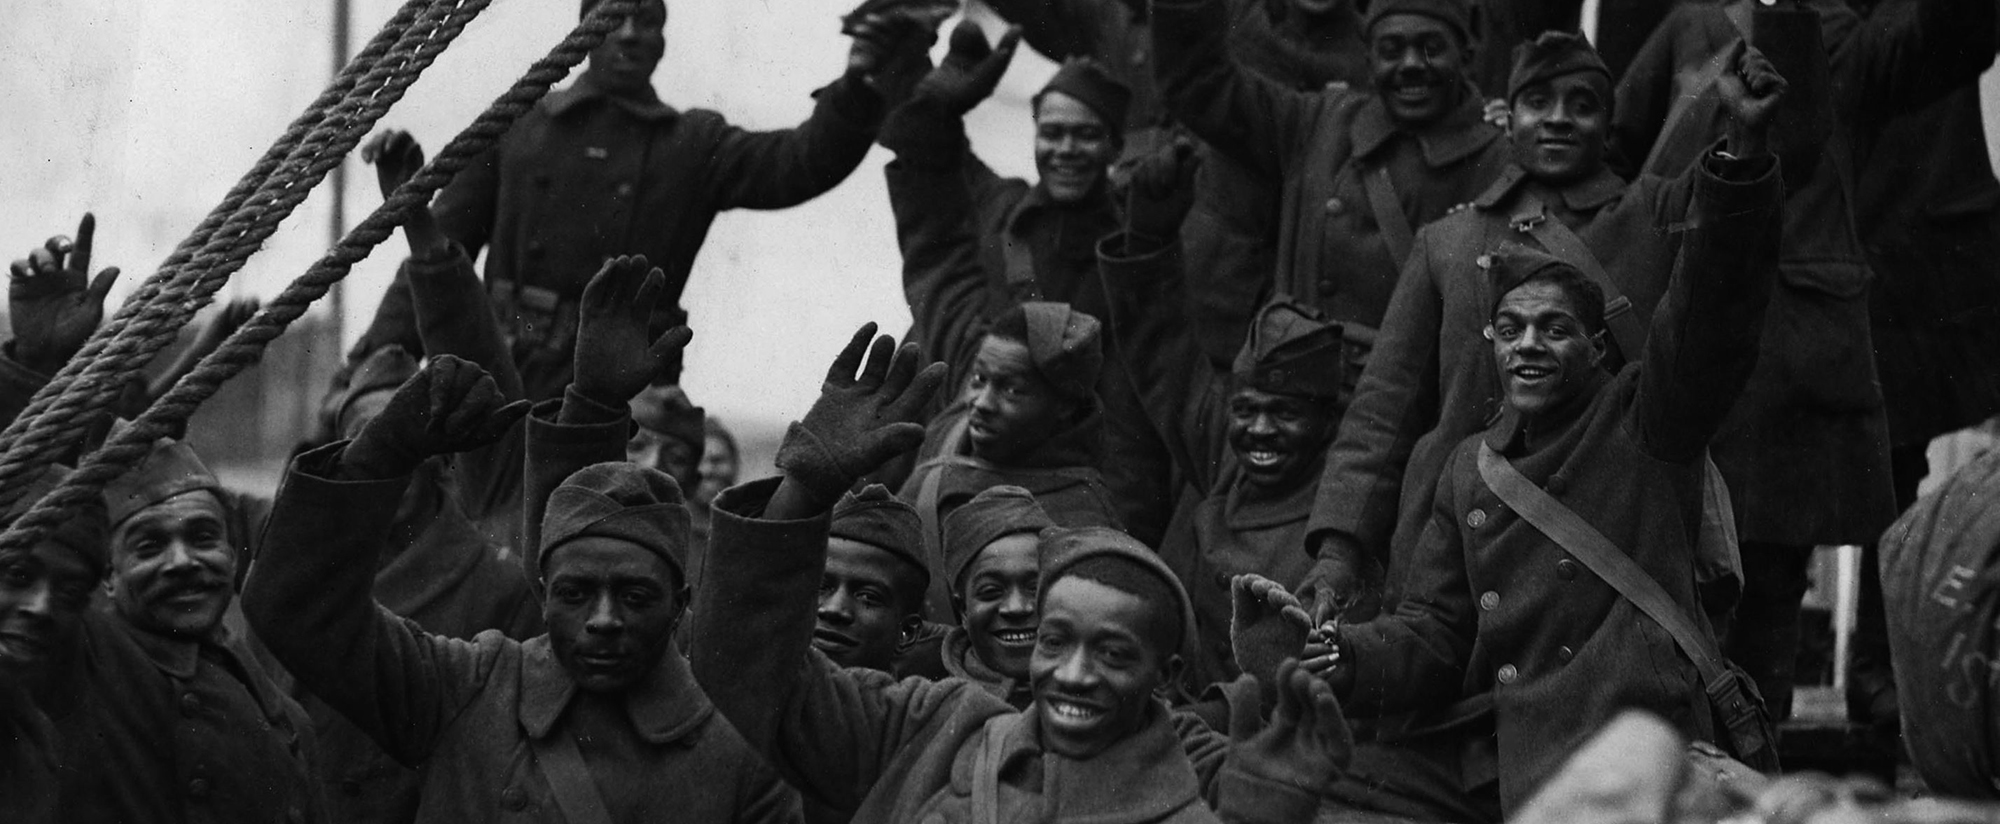 AMERICAN EXPERIENCE: The Great War - Harlem Hellfighters